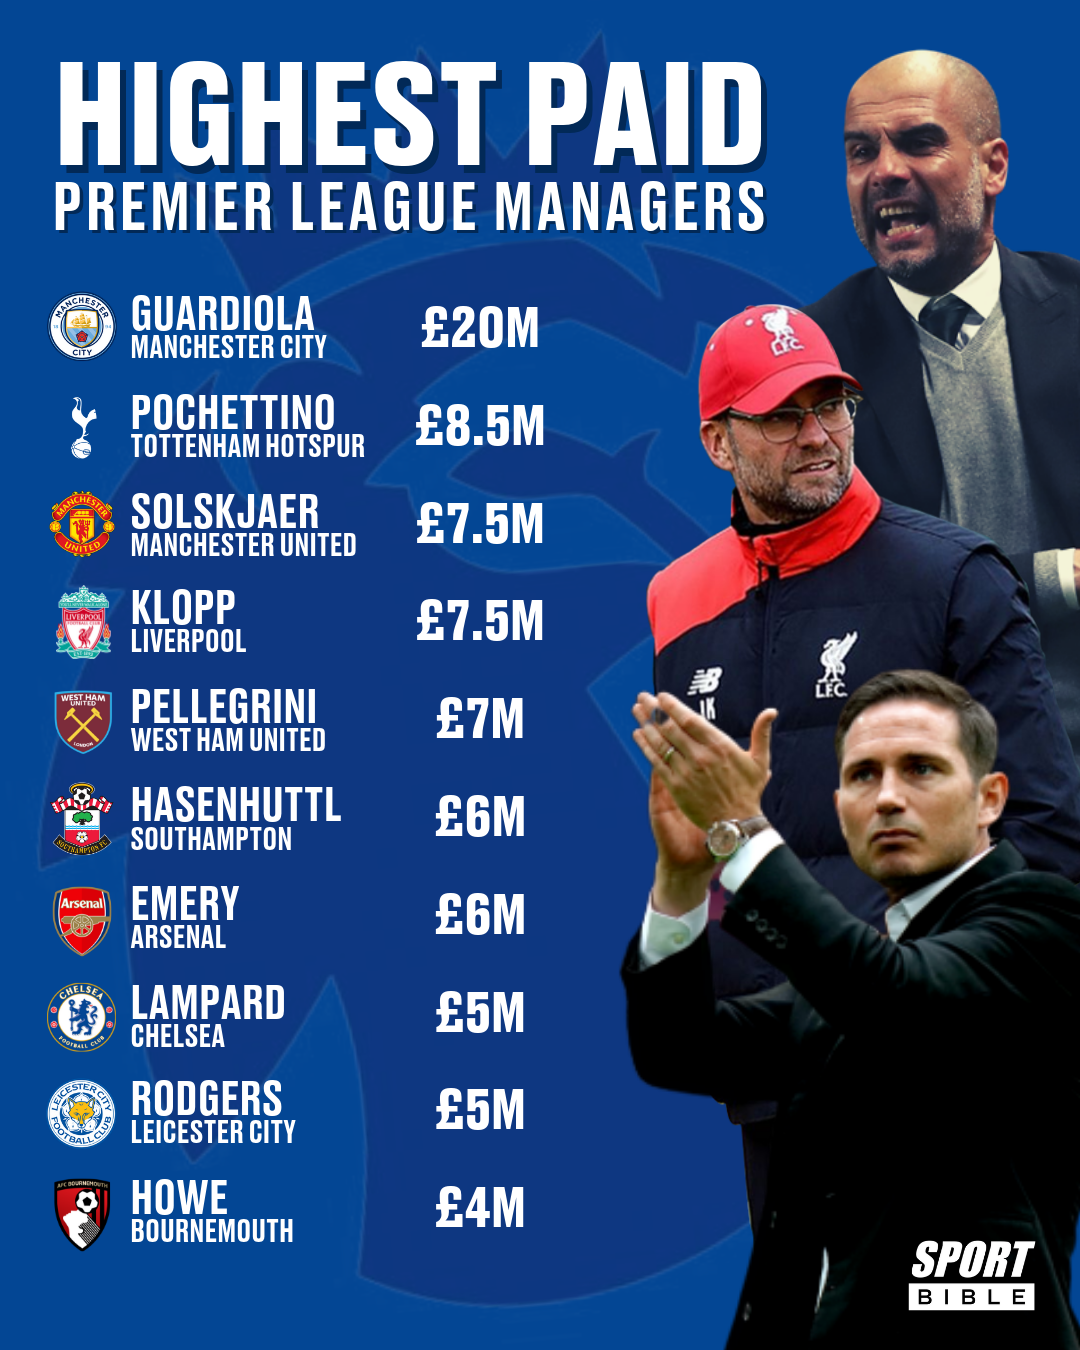 Who Is The Richest Coach In The World : richest, coach, world, Frank, Lampard, Becomes, Eighth, Highest, Premier, League, Manager, Behind, Guardiola, SPORTbible